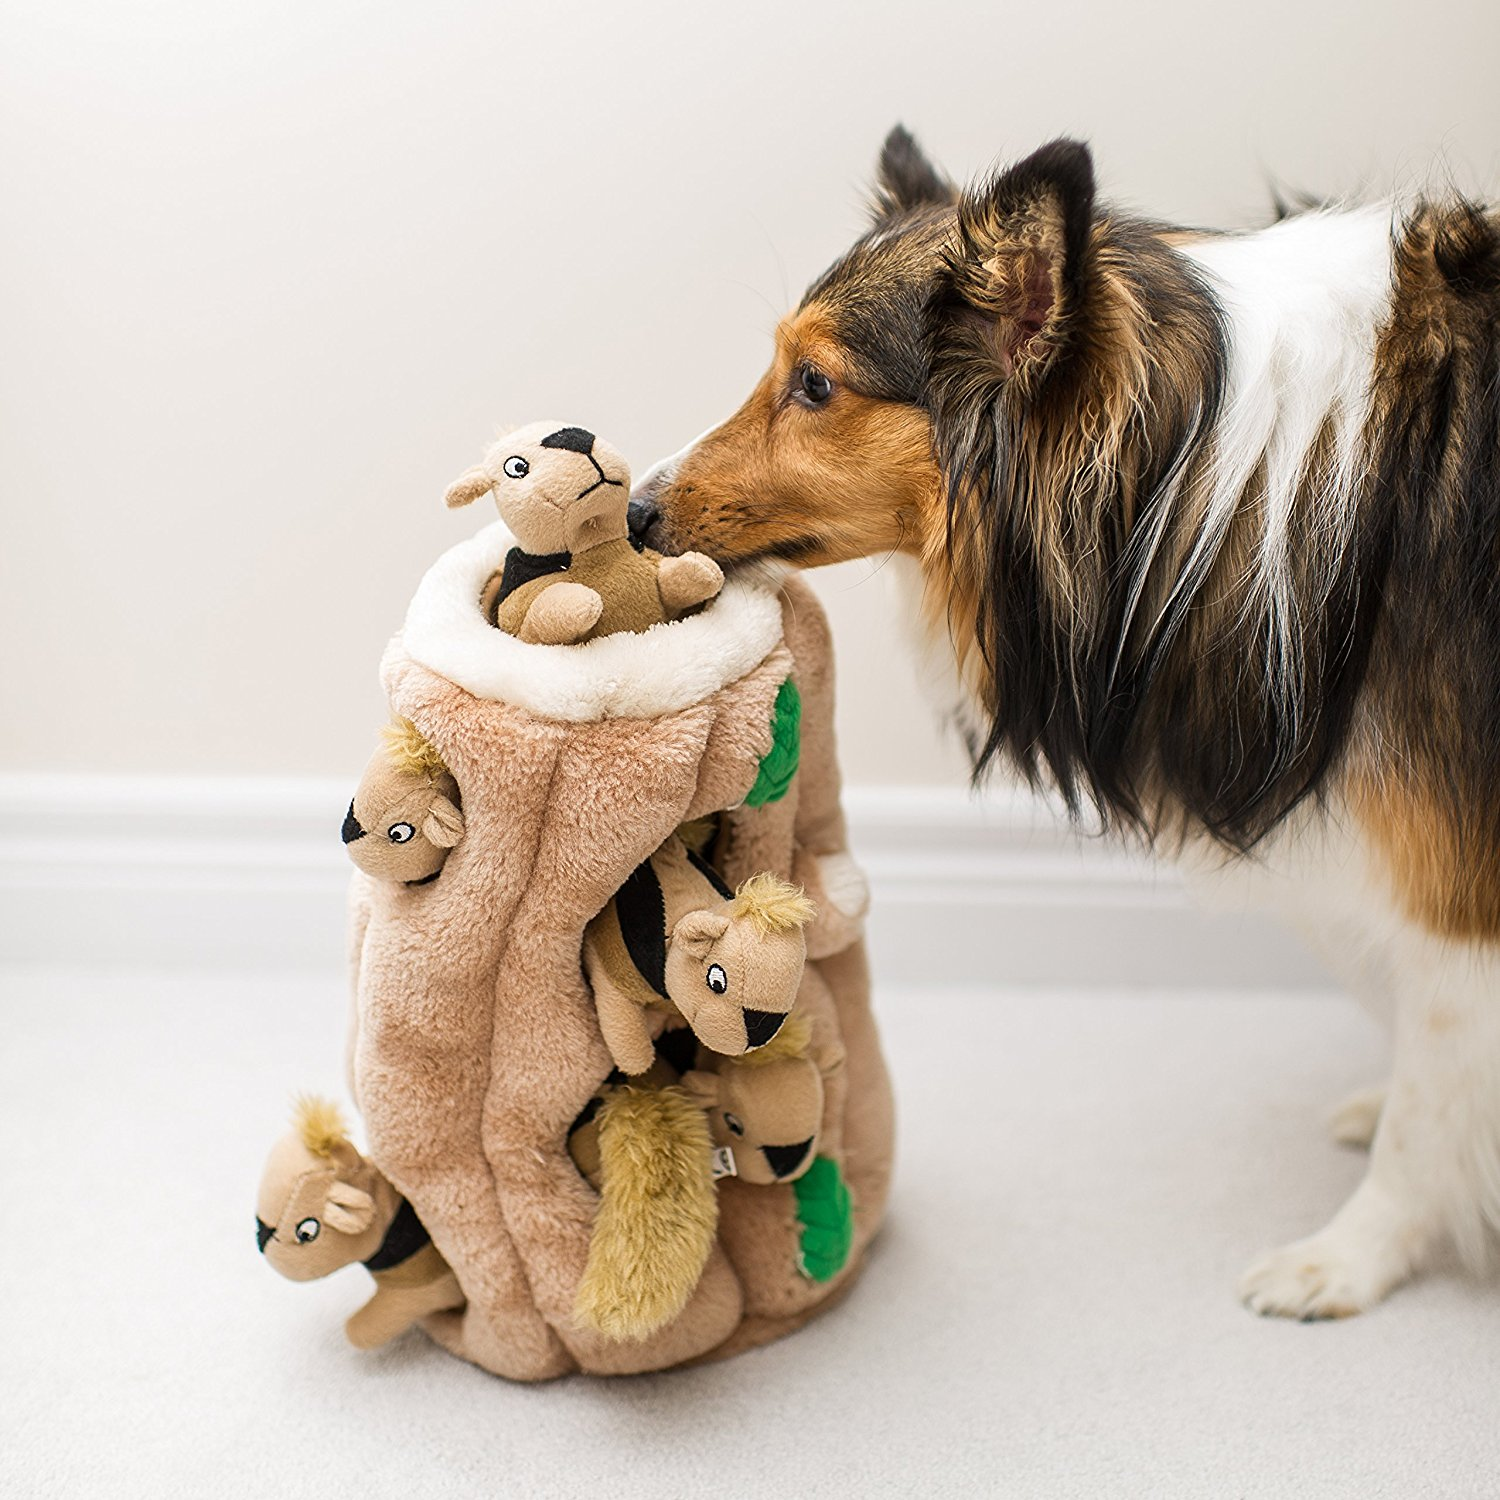 Puzzle Plush Squeaking Toys for Dogs